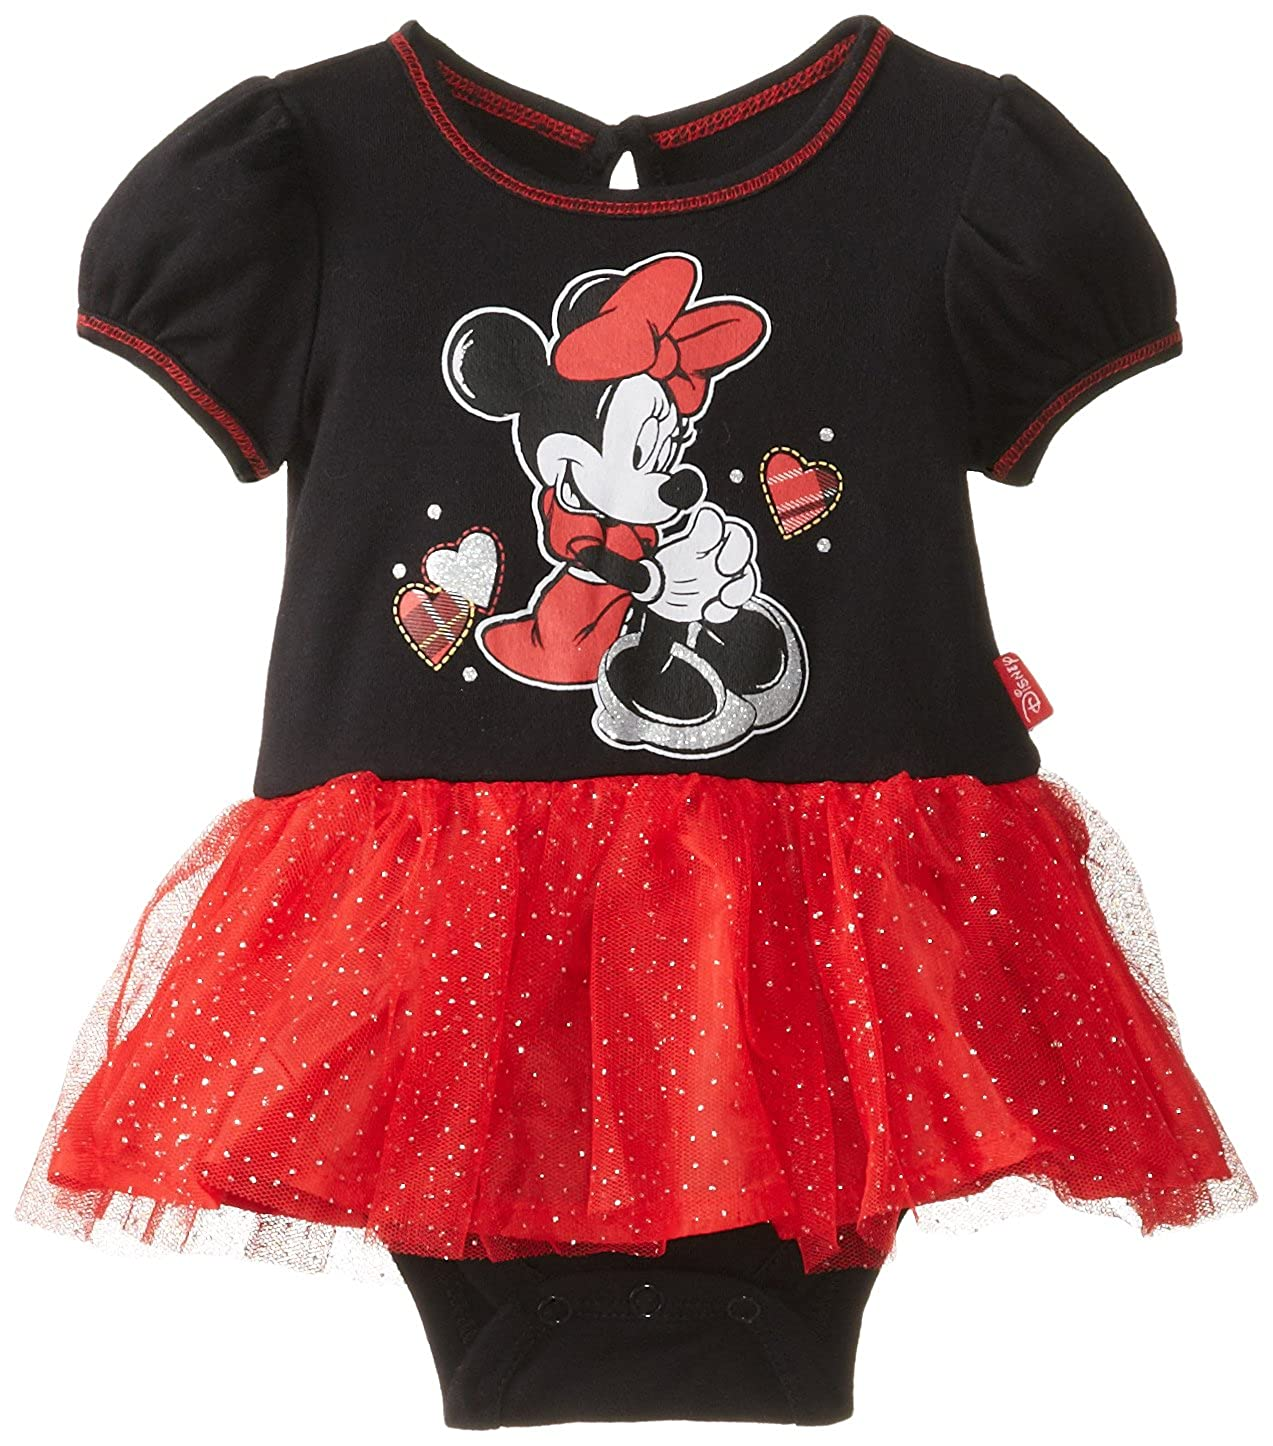 Disney Baby Baby-Girls Newborn Minnie Mouse Dress with Tulle Skirt